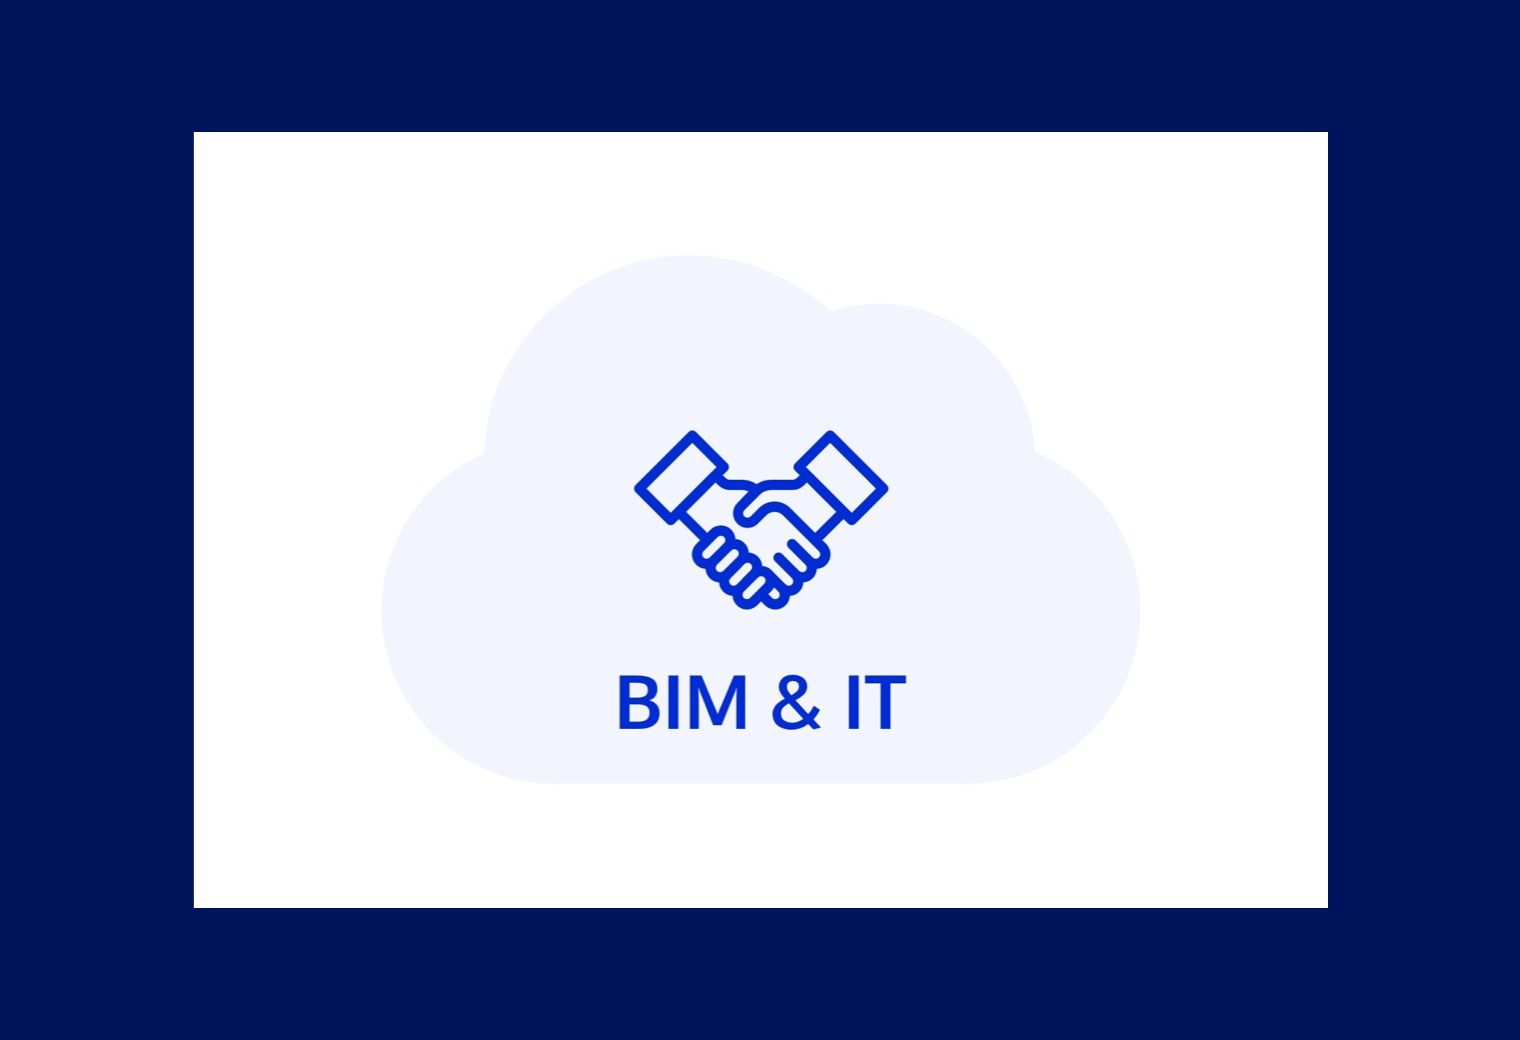 BIM and IT are unified to implemented